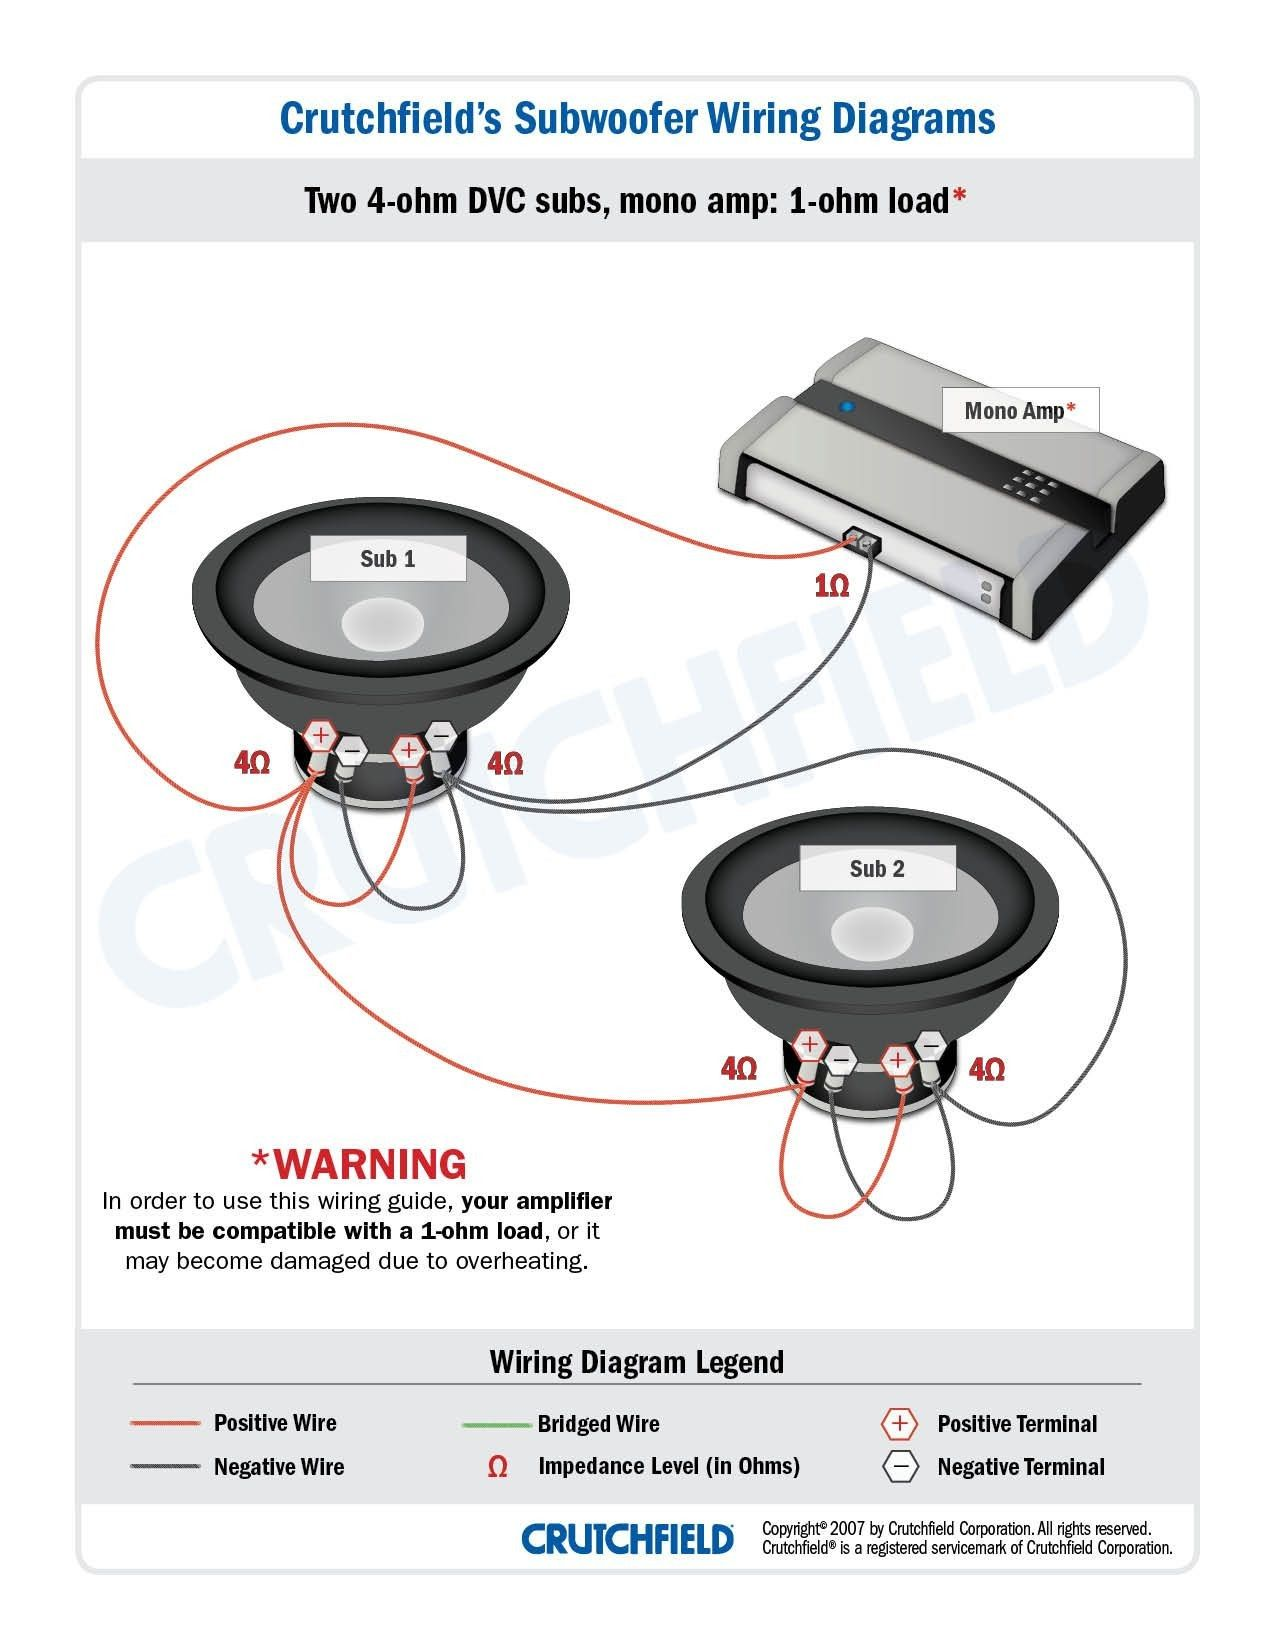 [ZHKZ_3066]  Crossover Wiring Diagram Car Audio - bookingritzcarlton.info | Subwoofer  wiring, Car audio, Car audio installation | Car Audio Wiring Subwoofer |  | Pinterest